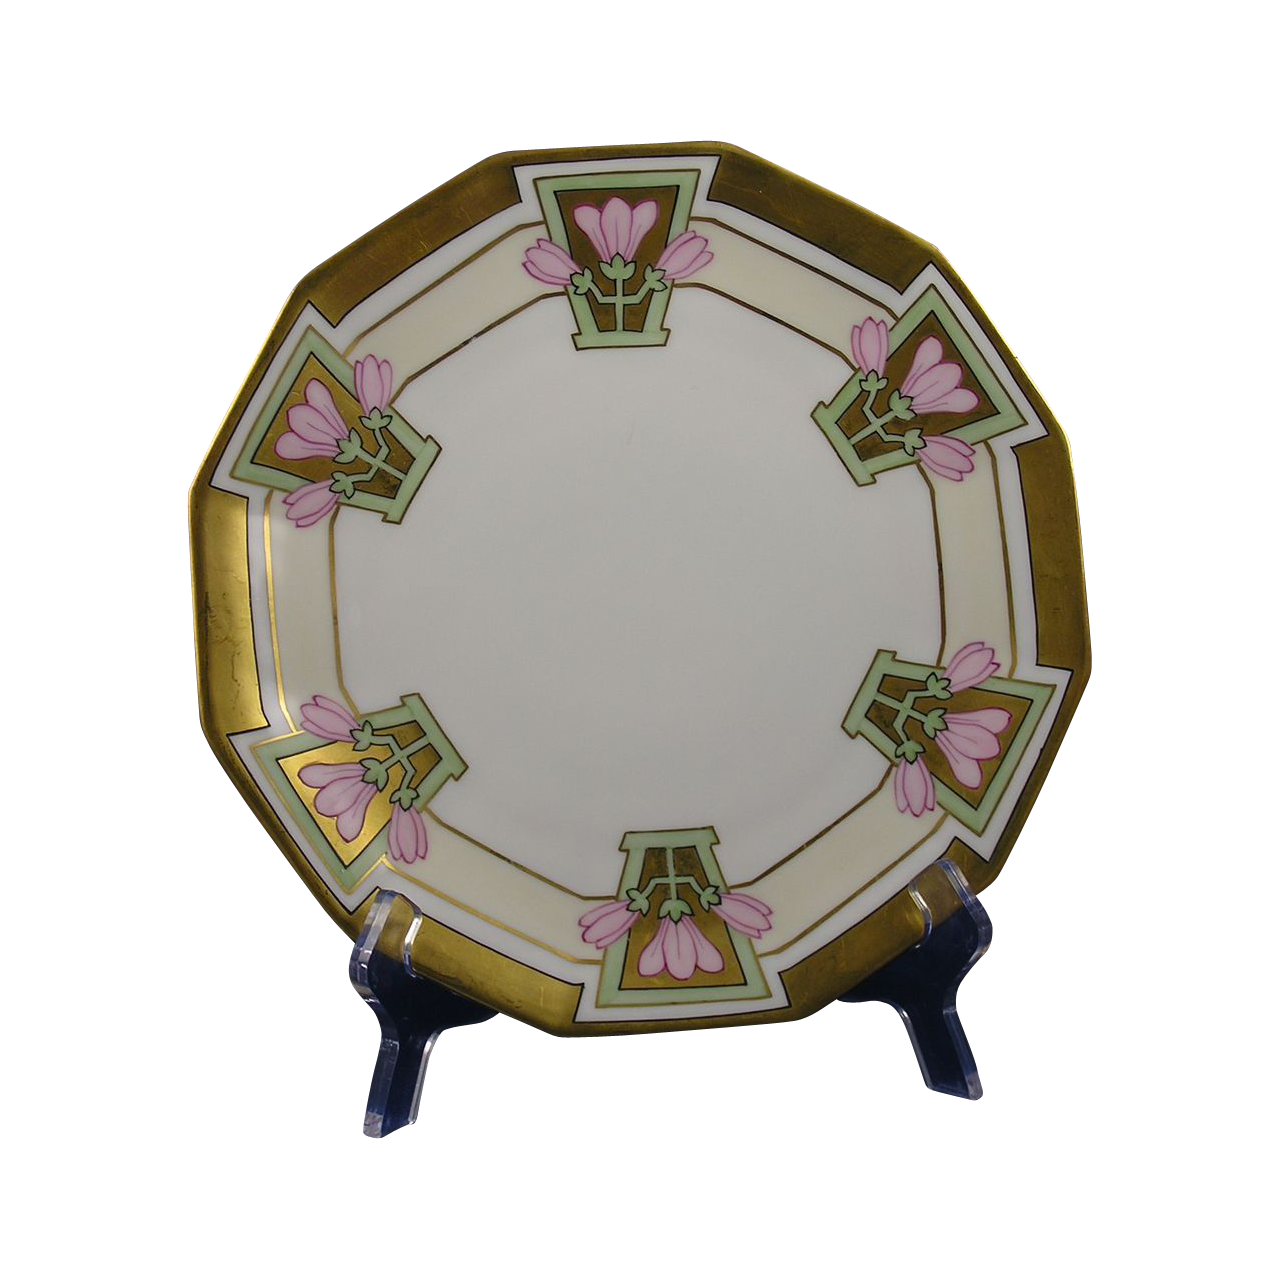 Blakeman & Henderson Limoges Arts & Crafts Pink Floral Plate (c.1912-1920) - Keramic Studio Design